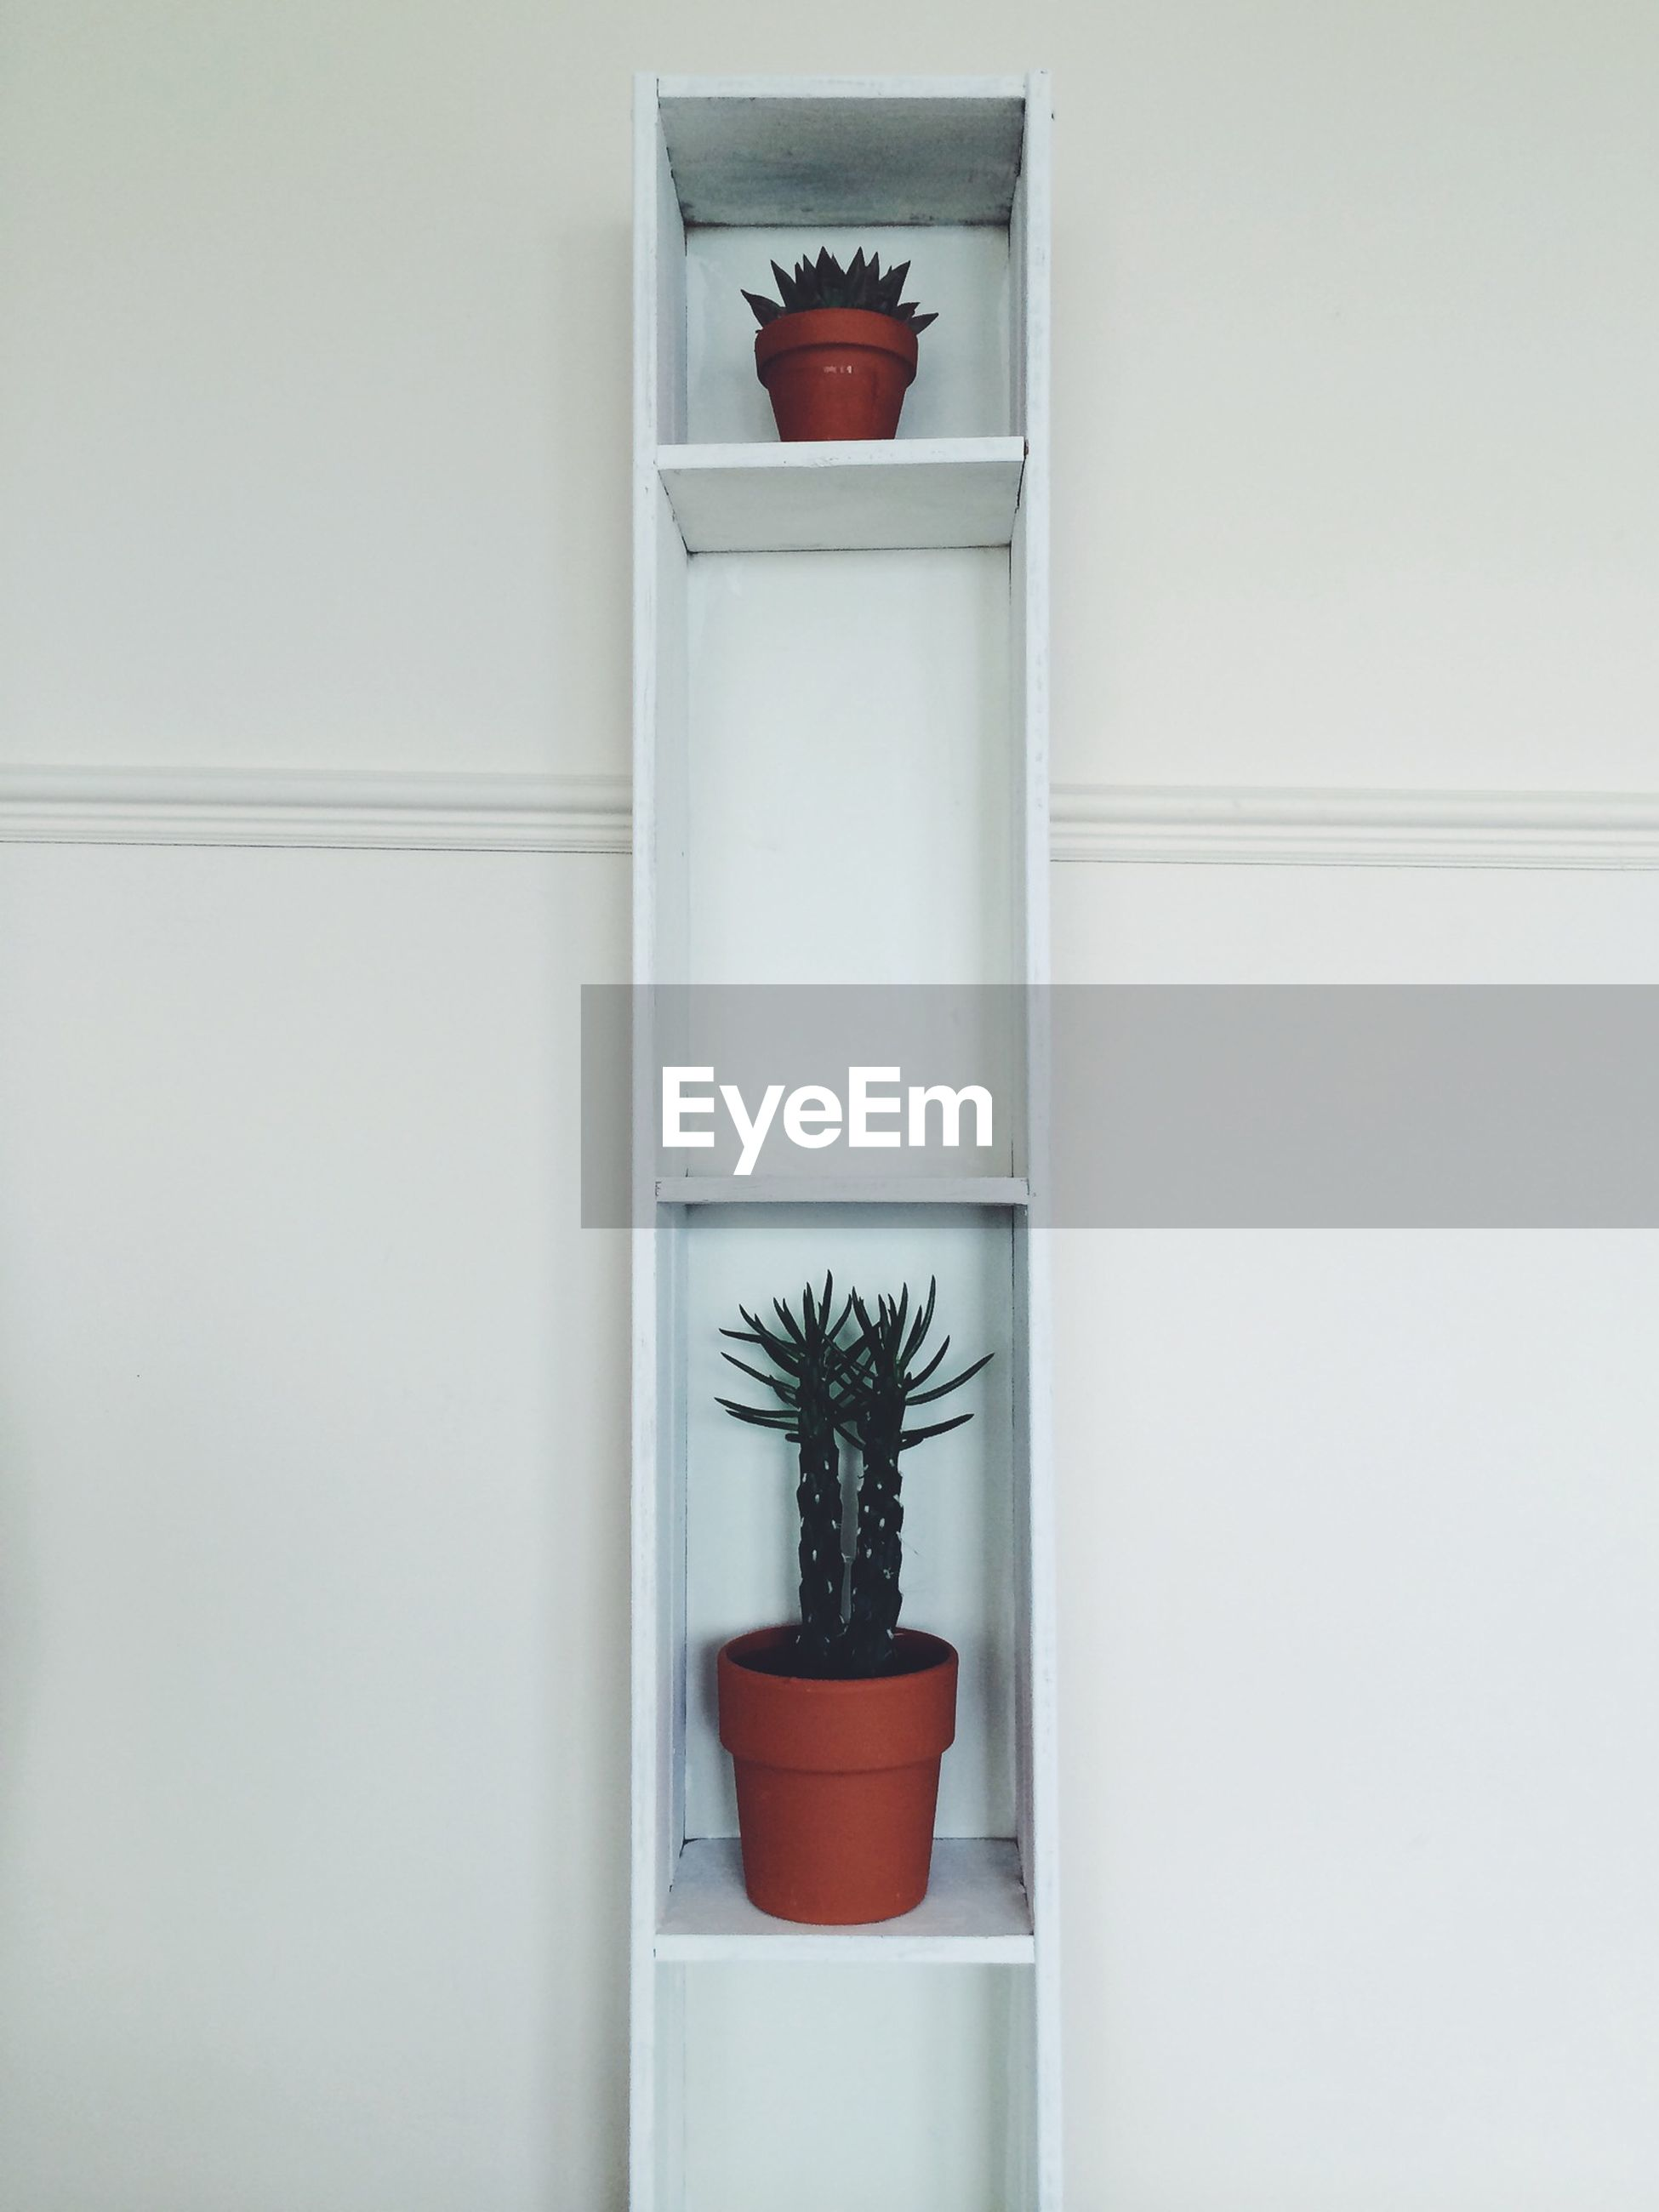 indoors, wall - building feature, potted plant, wall, plant, window, flower, red, window sill, home interior, vase, white color, simplicity, growth, no people, copy space, house, flower pot, built structure, close-up